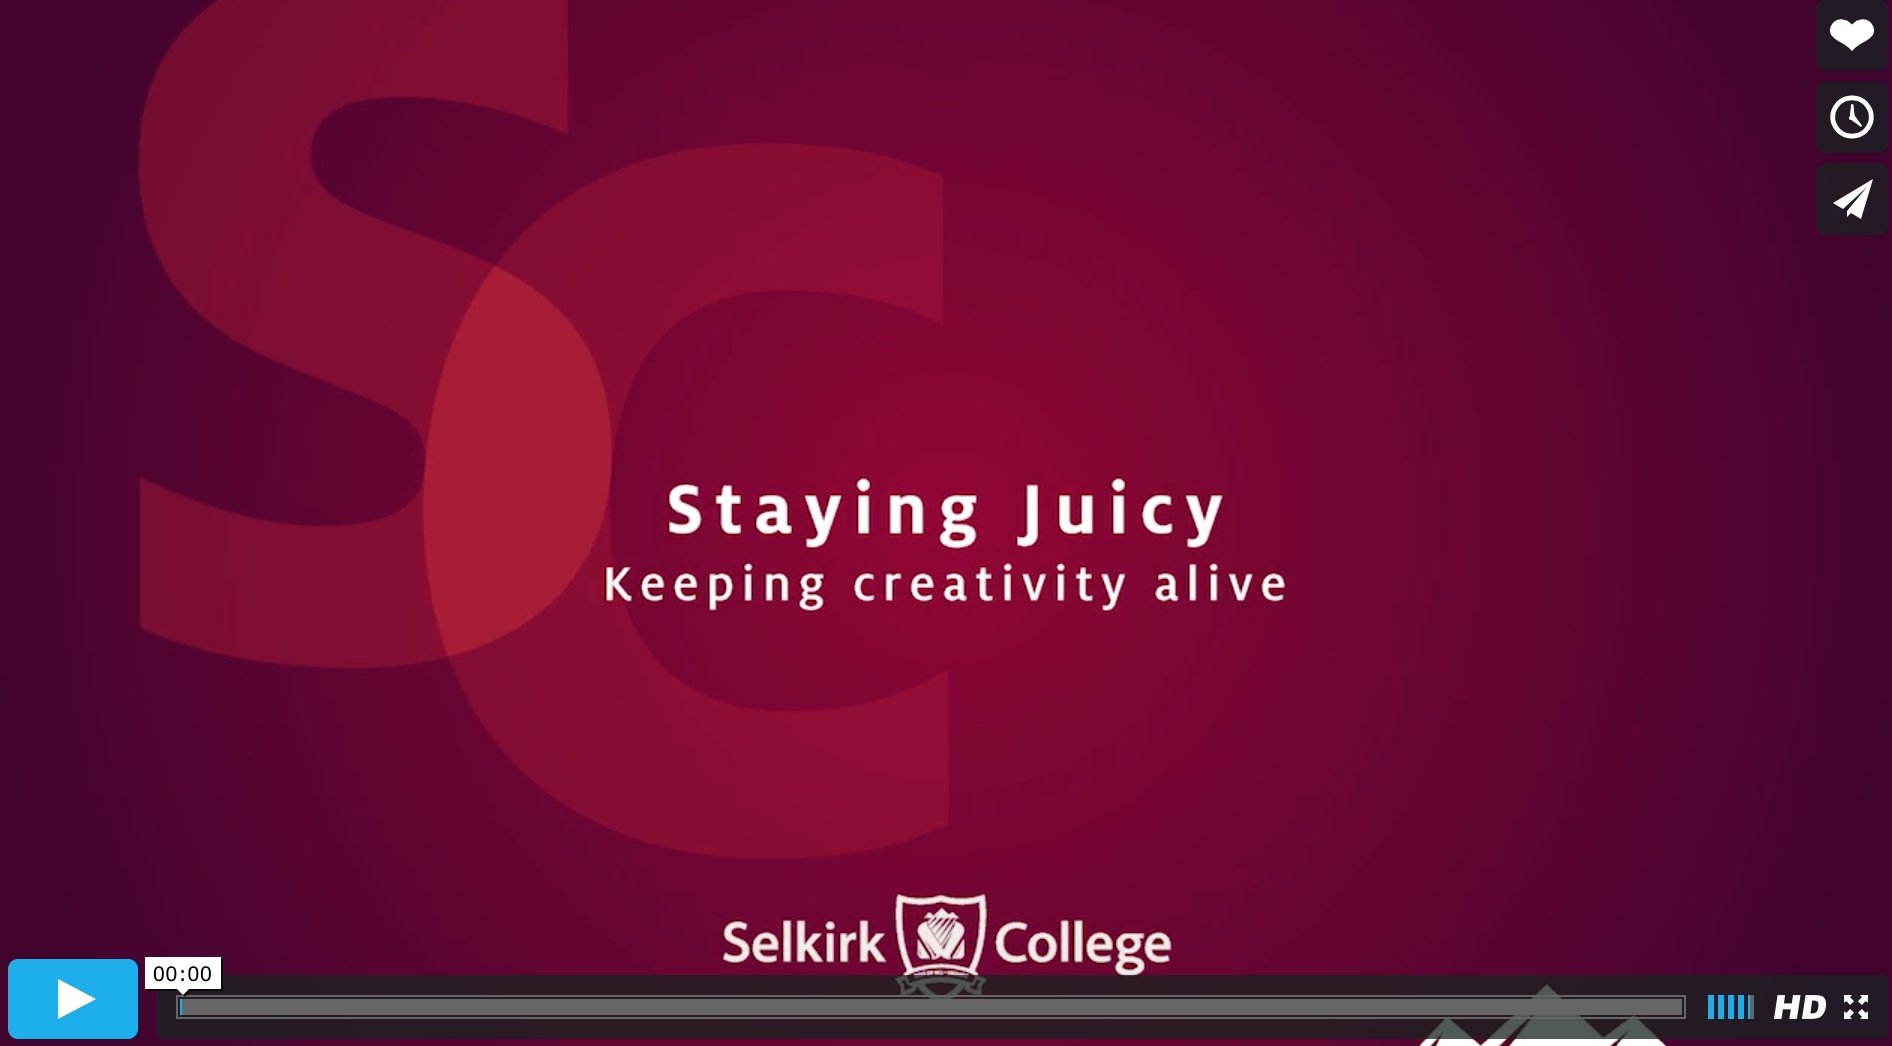 Staying Juicy: Keeping Creativity Alive